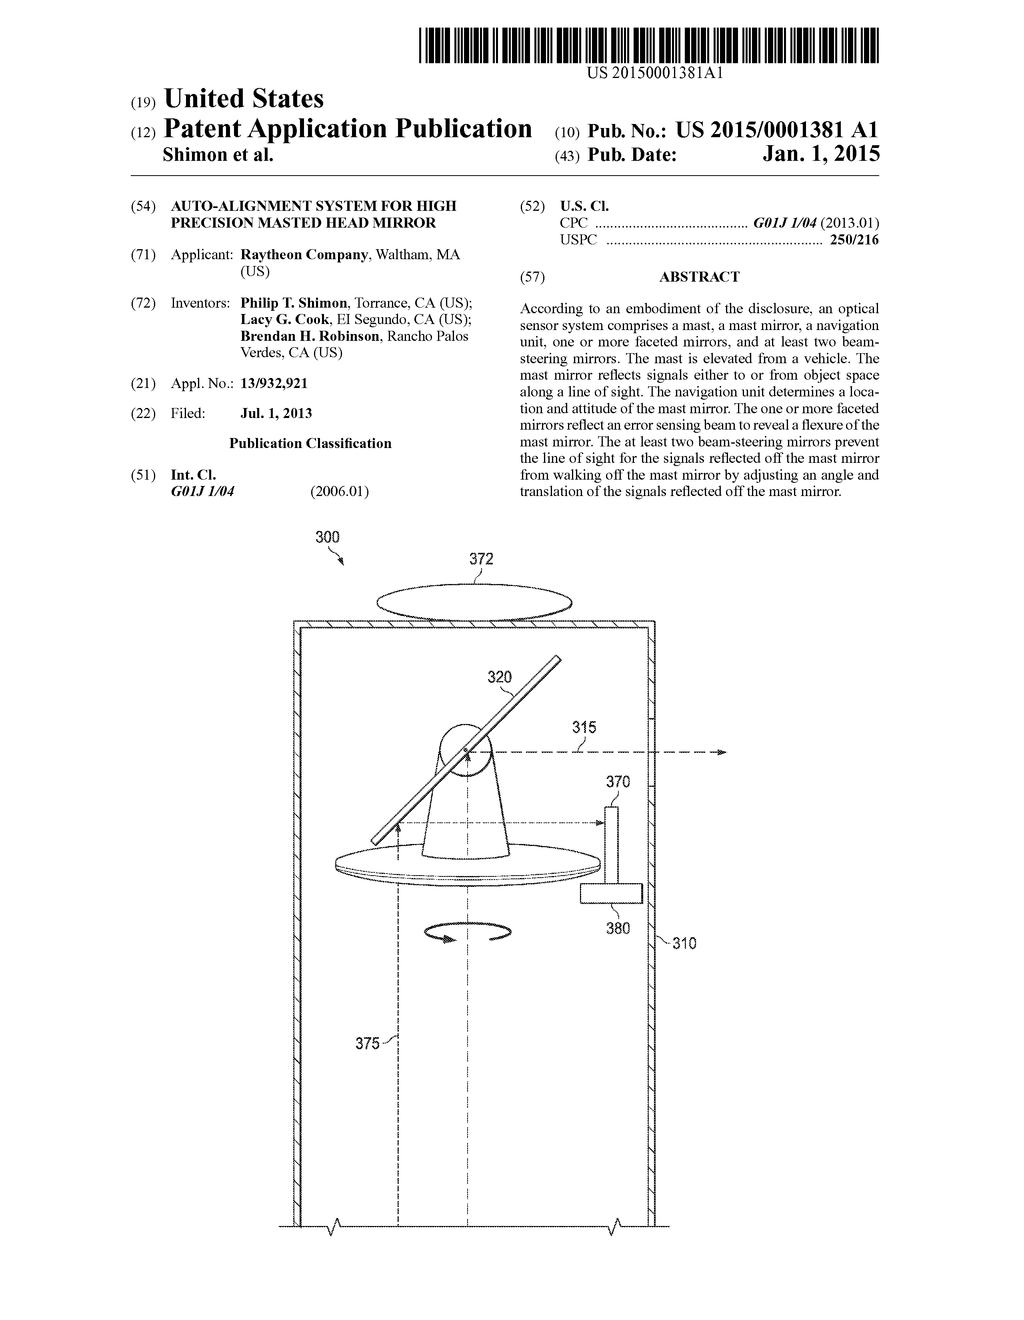 hight resolution of auto alignment system for high precision masted head mirror diagram schematic and image 01